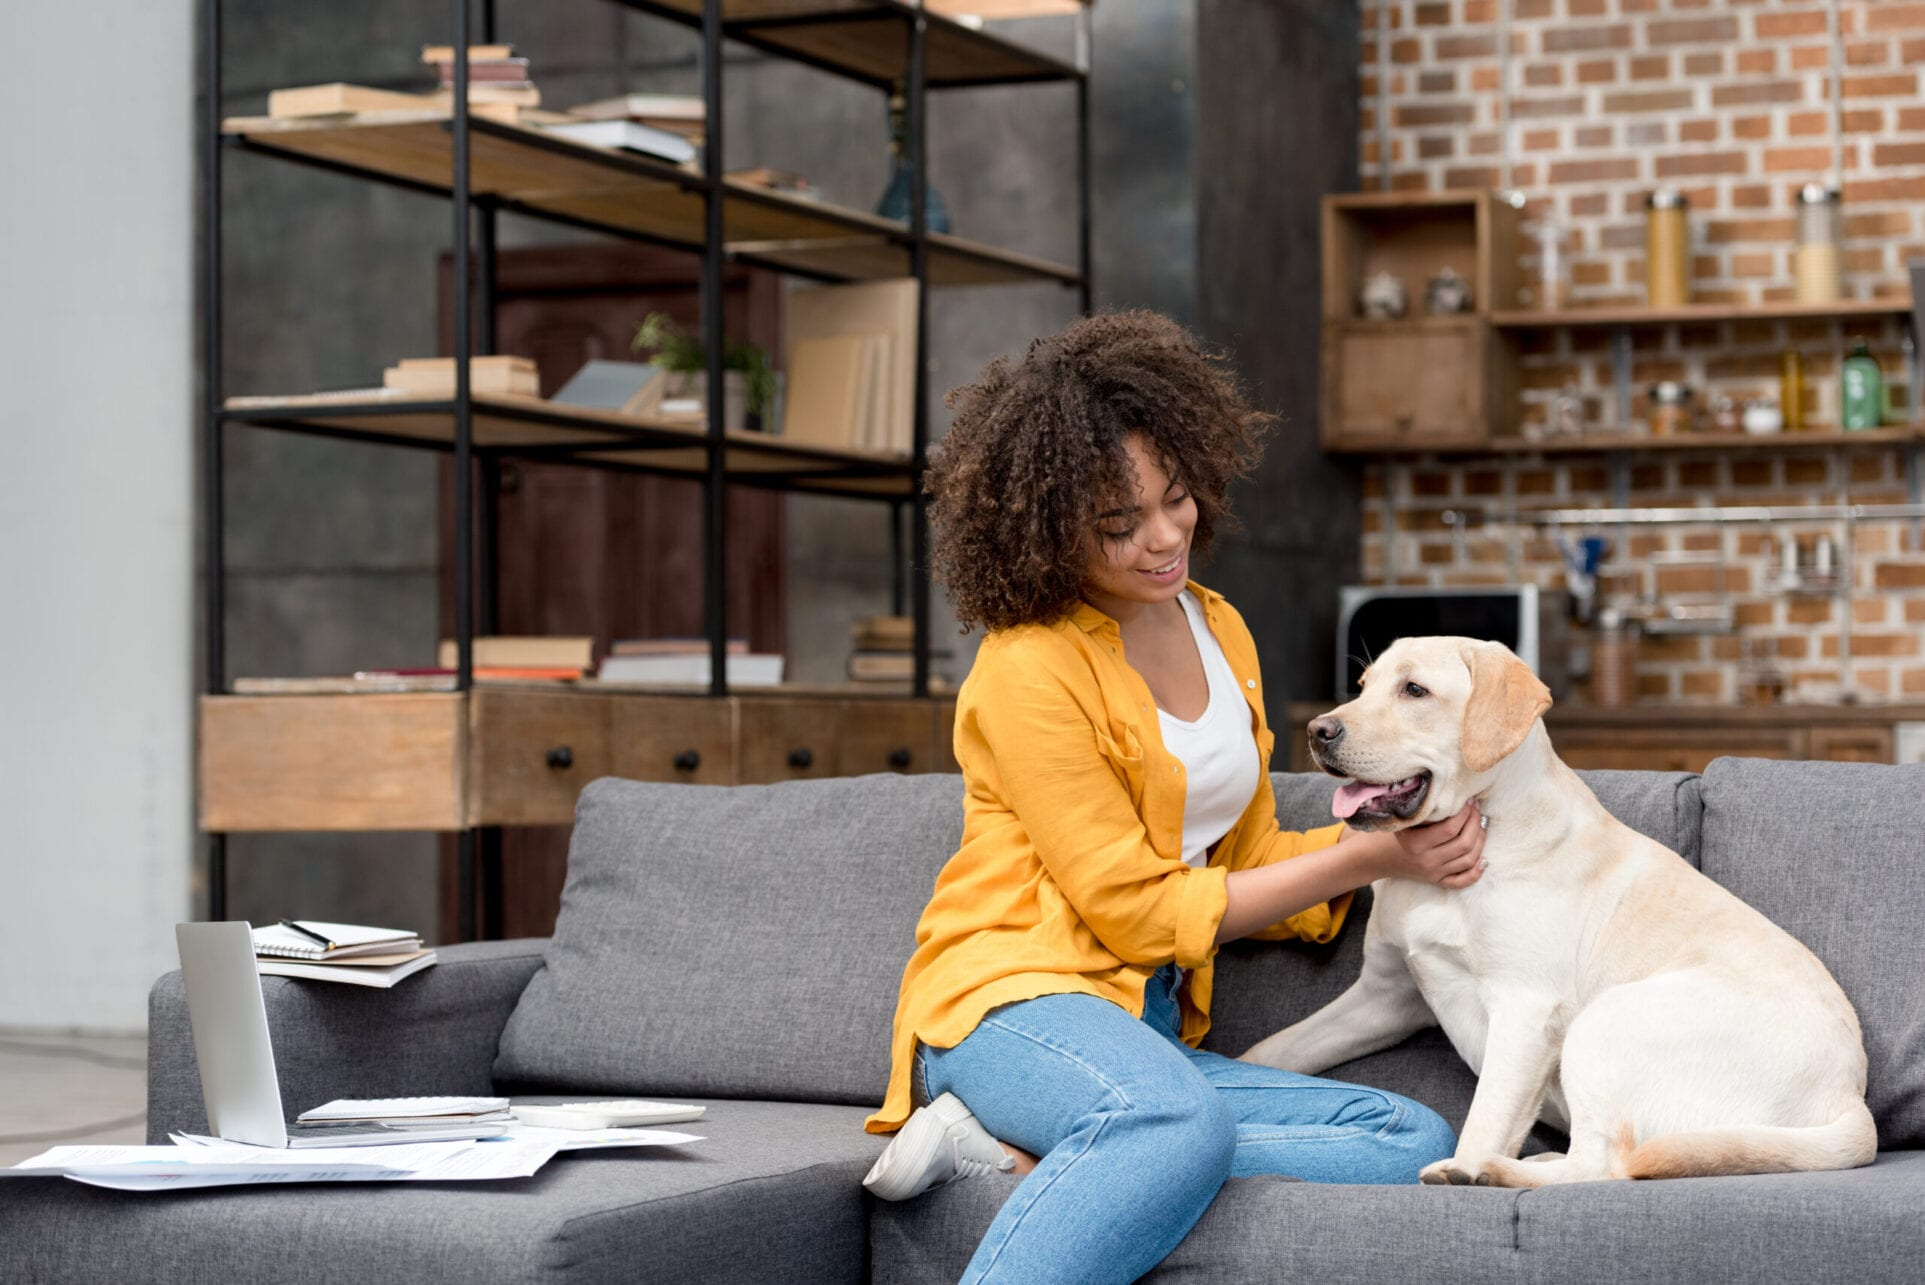 beautiful young woman working at home and petting her dog